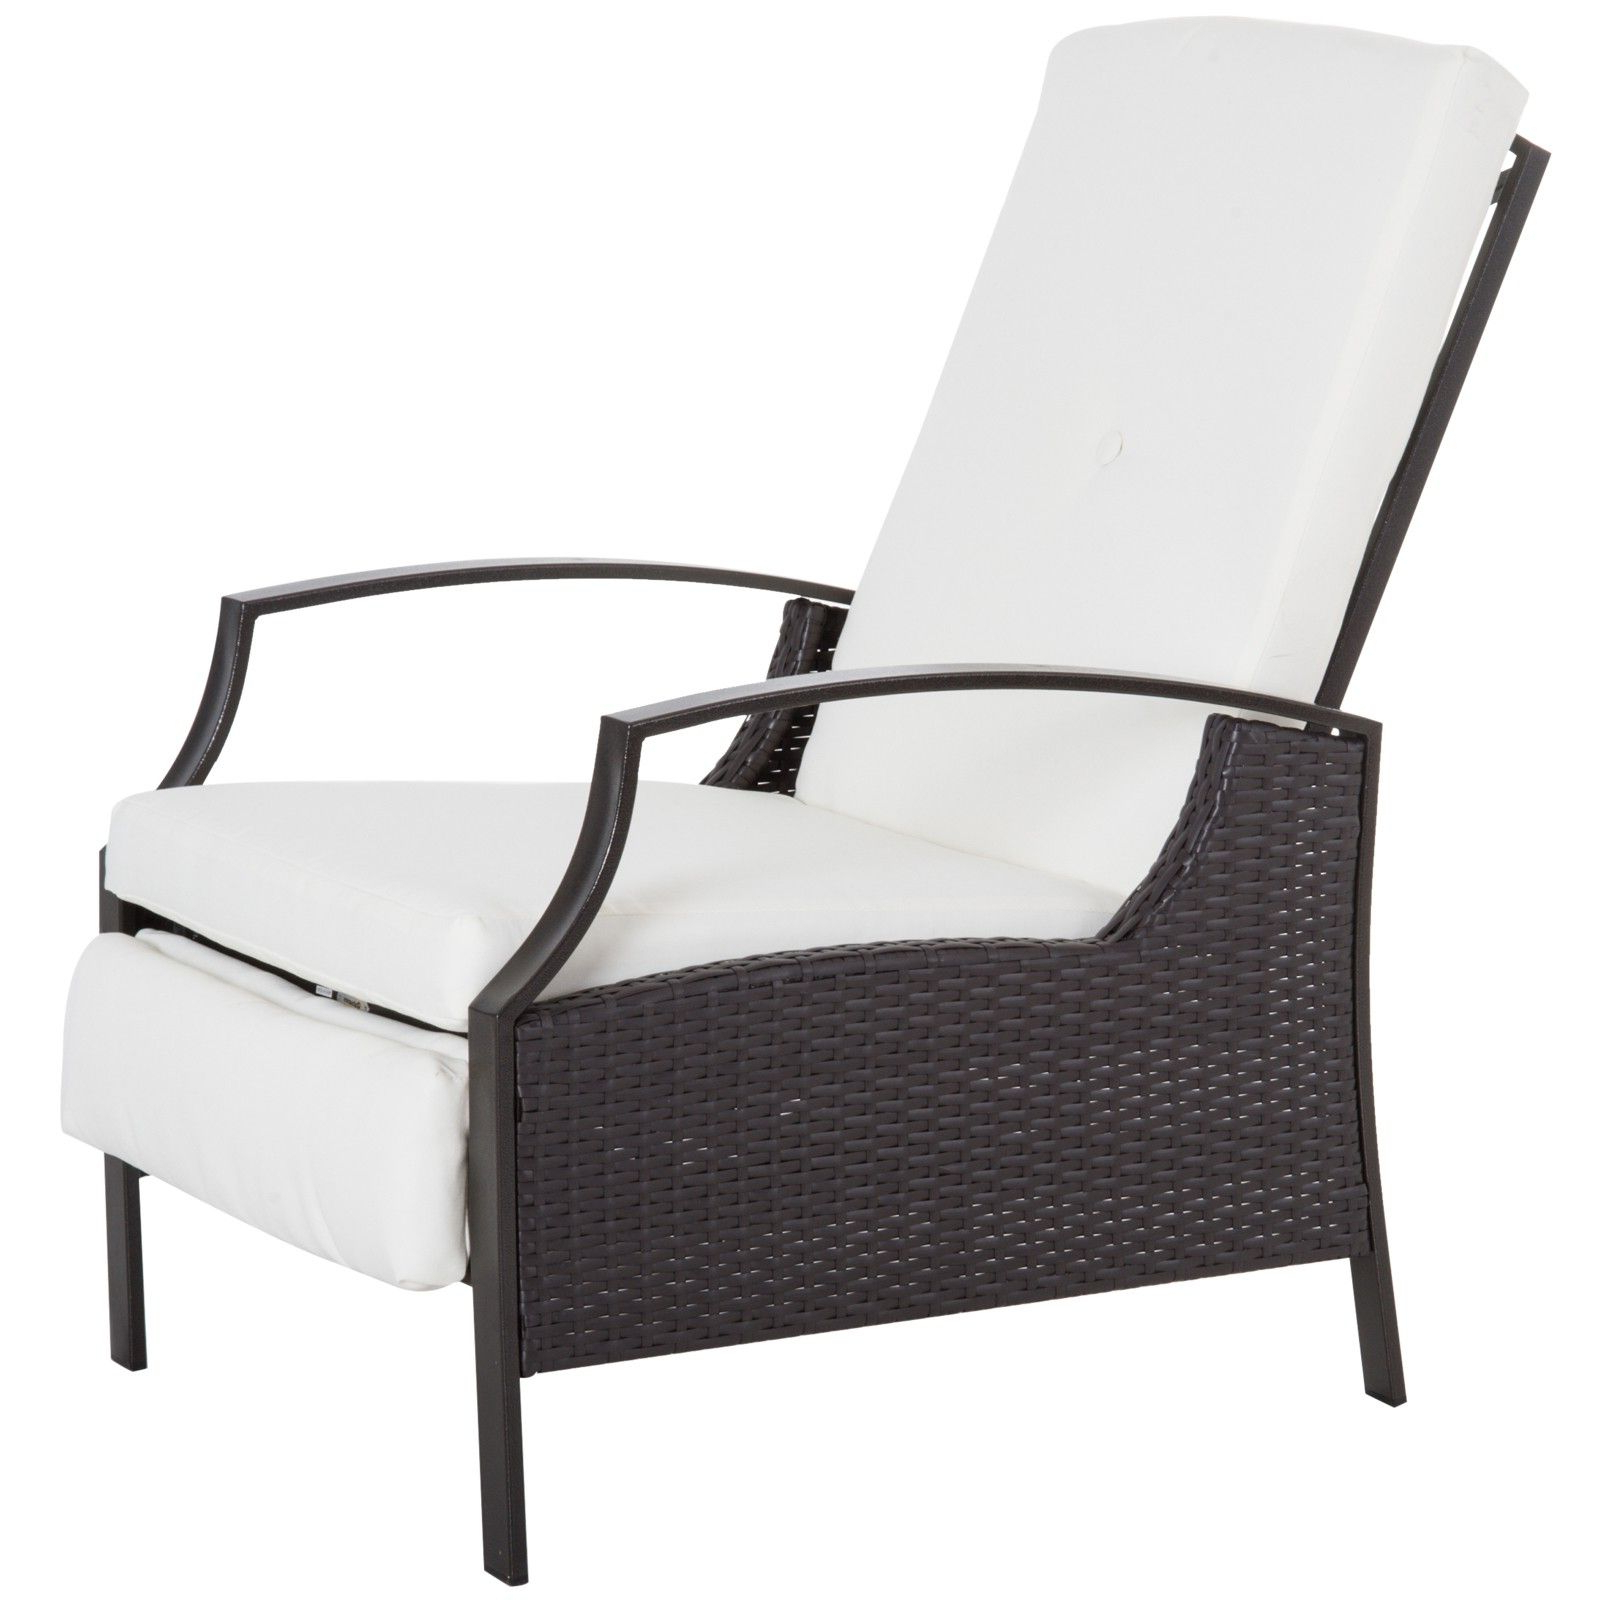 Outsunny Outdoor Rattan Recliner Chair With Cushion – Dark Regarding Most Recent Outdoor Adjustable Rattan Wicker Recliner Chairs With Cushion (View 6 of 25)